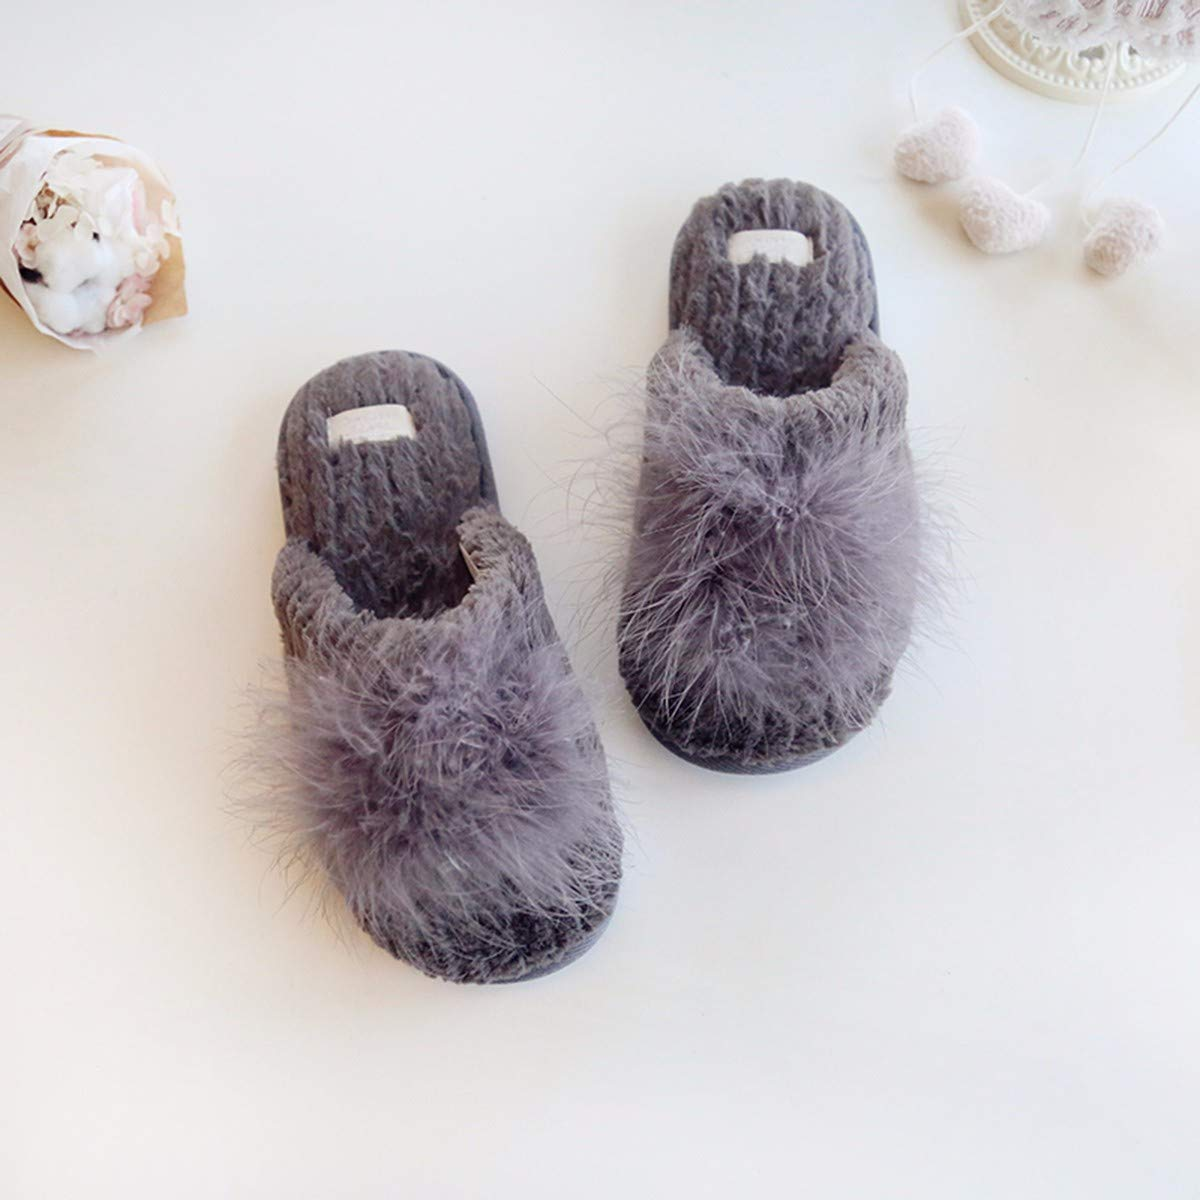 Winter Home Slippers Warm Cotton Slippers. QPGGP-Slippers Autumn